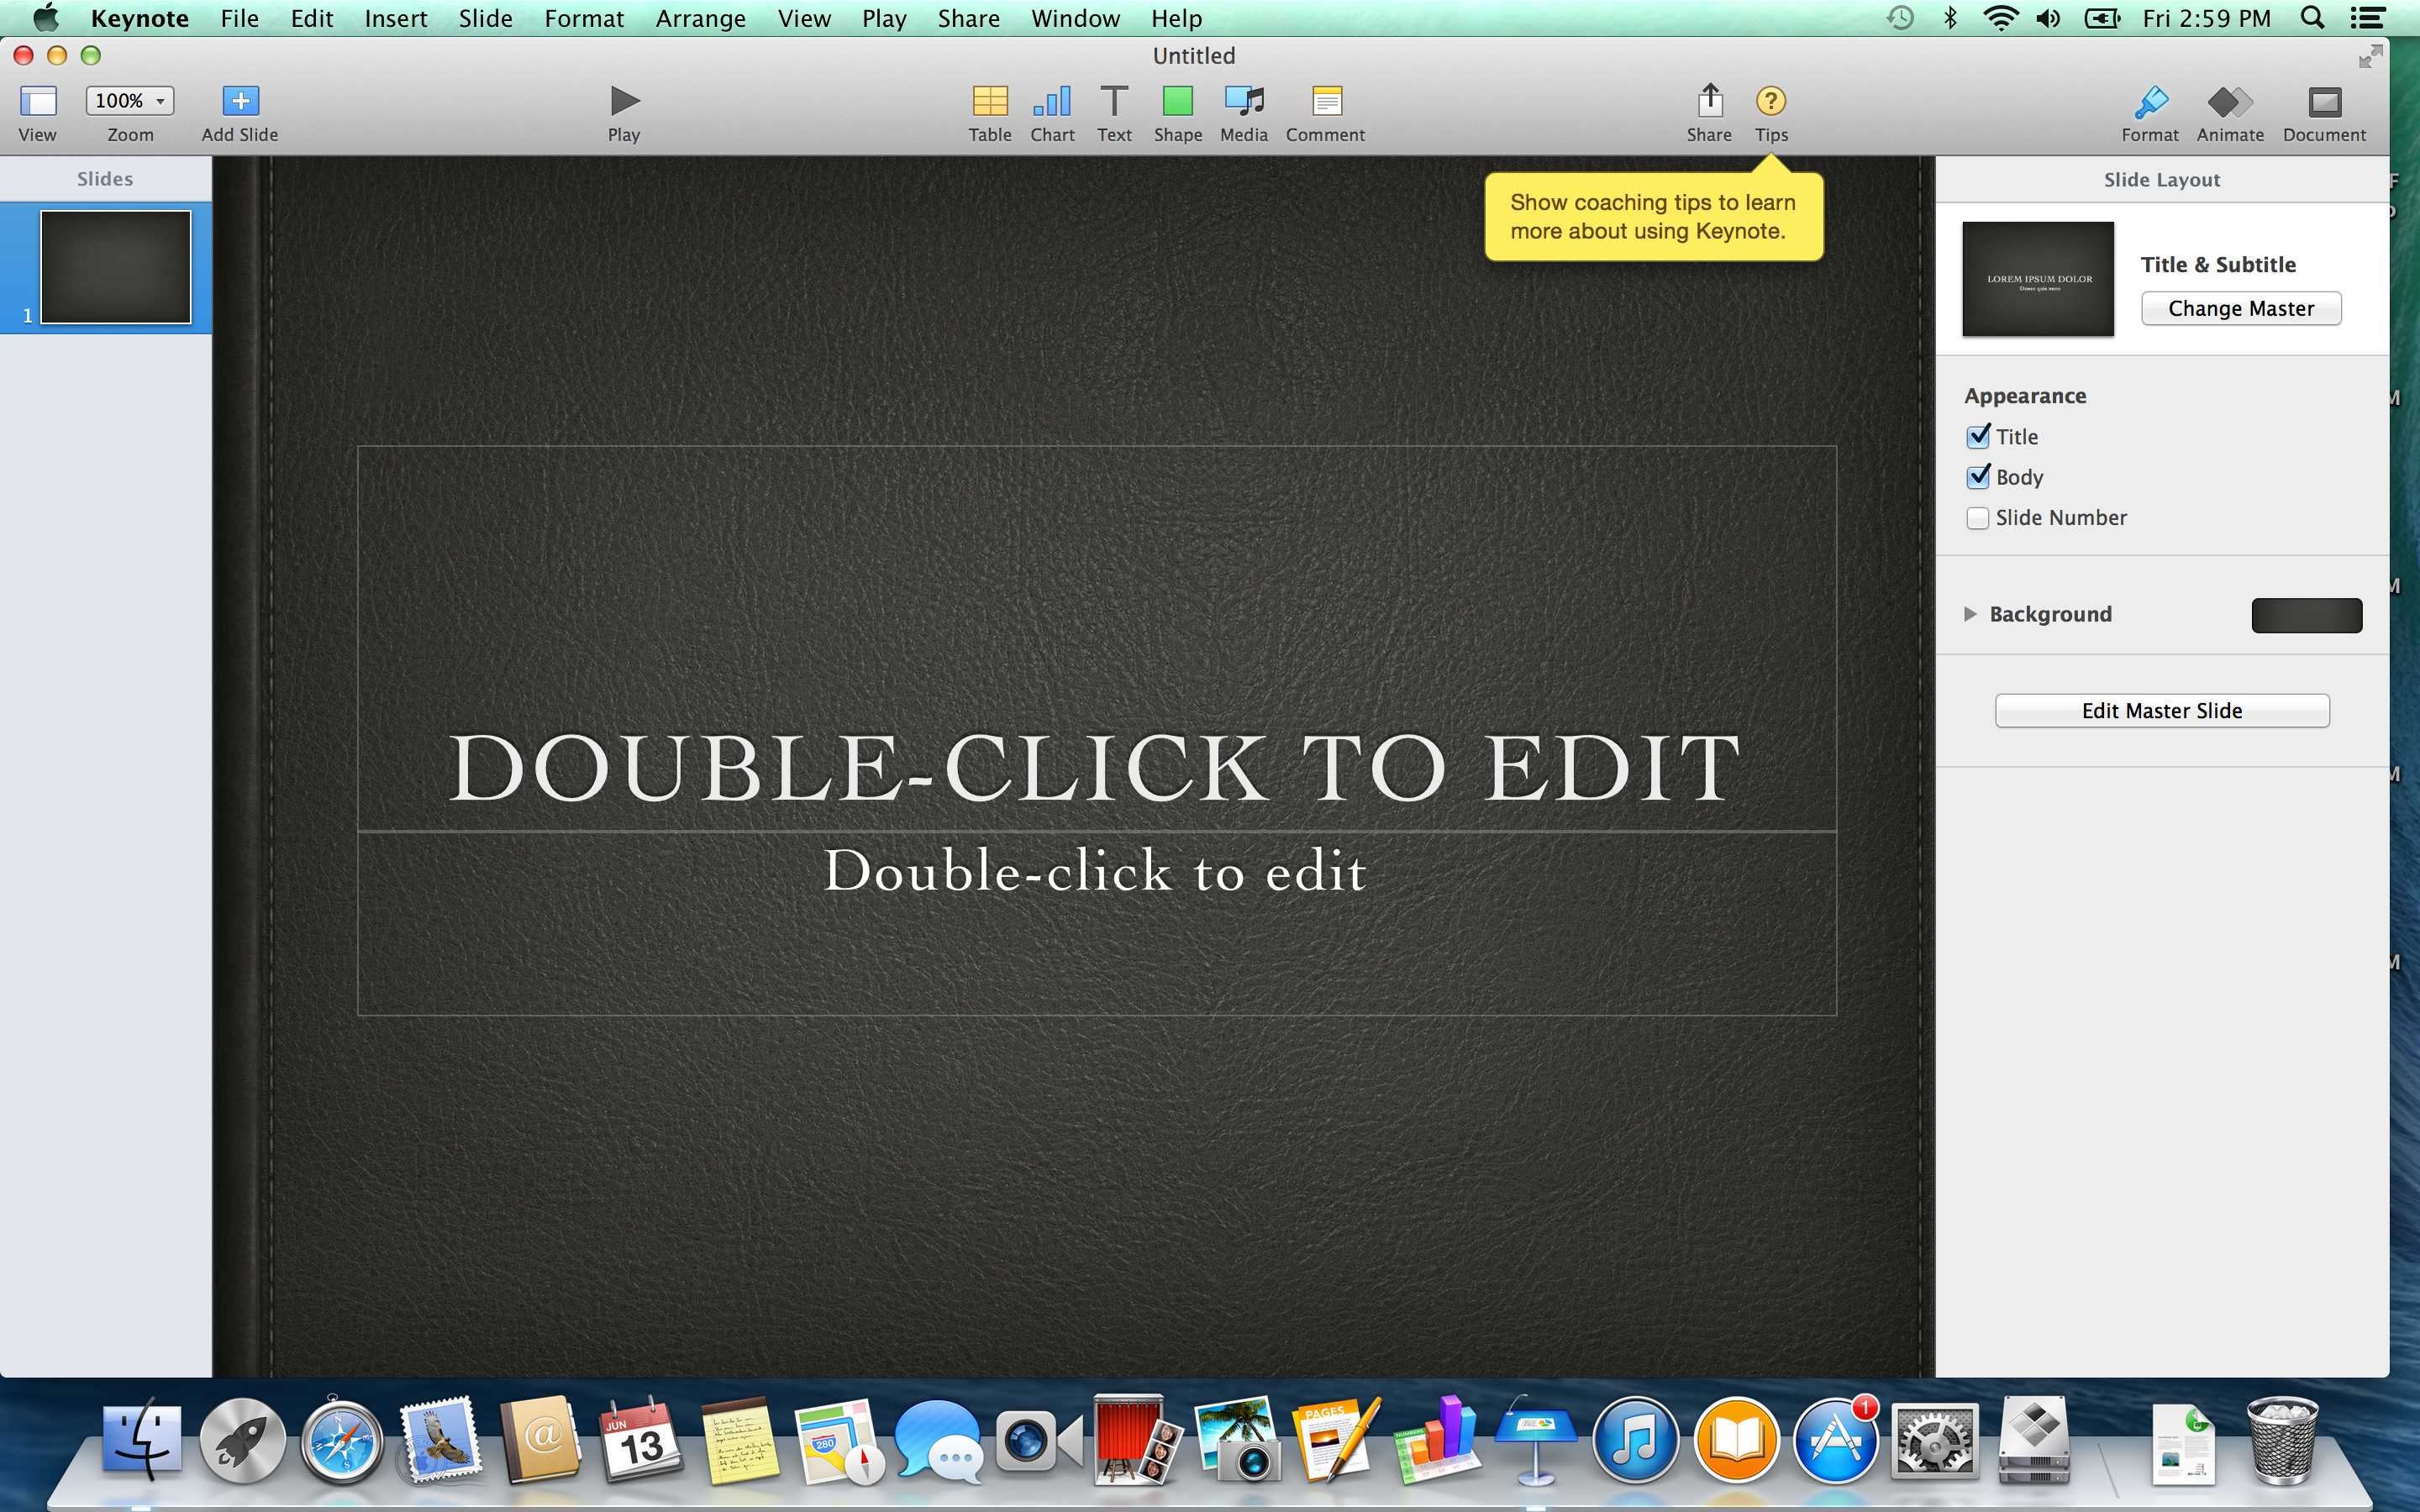 A screenshot of the Apple MacBook Pro with Retina Display's Keynote software.